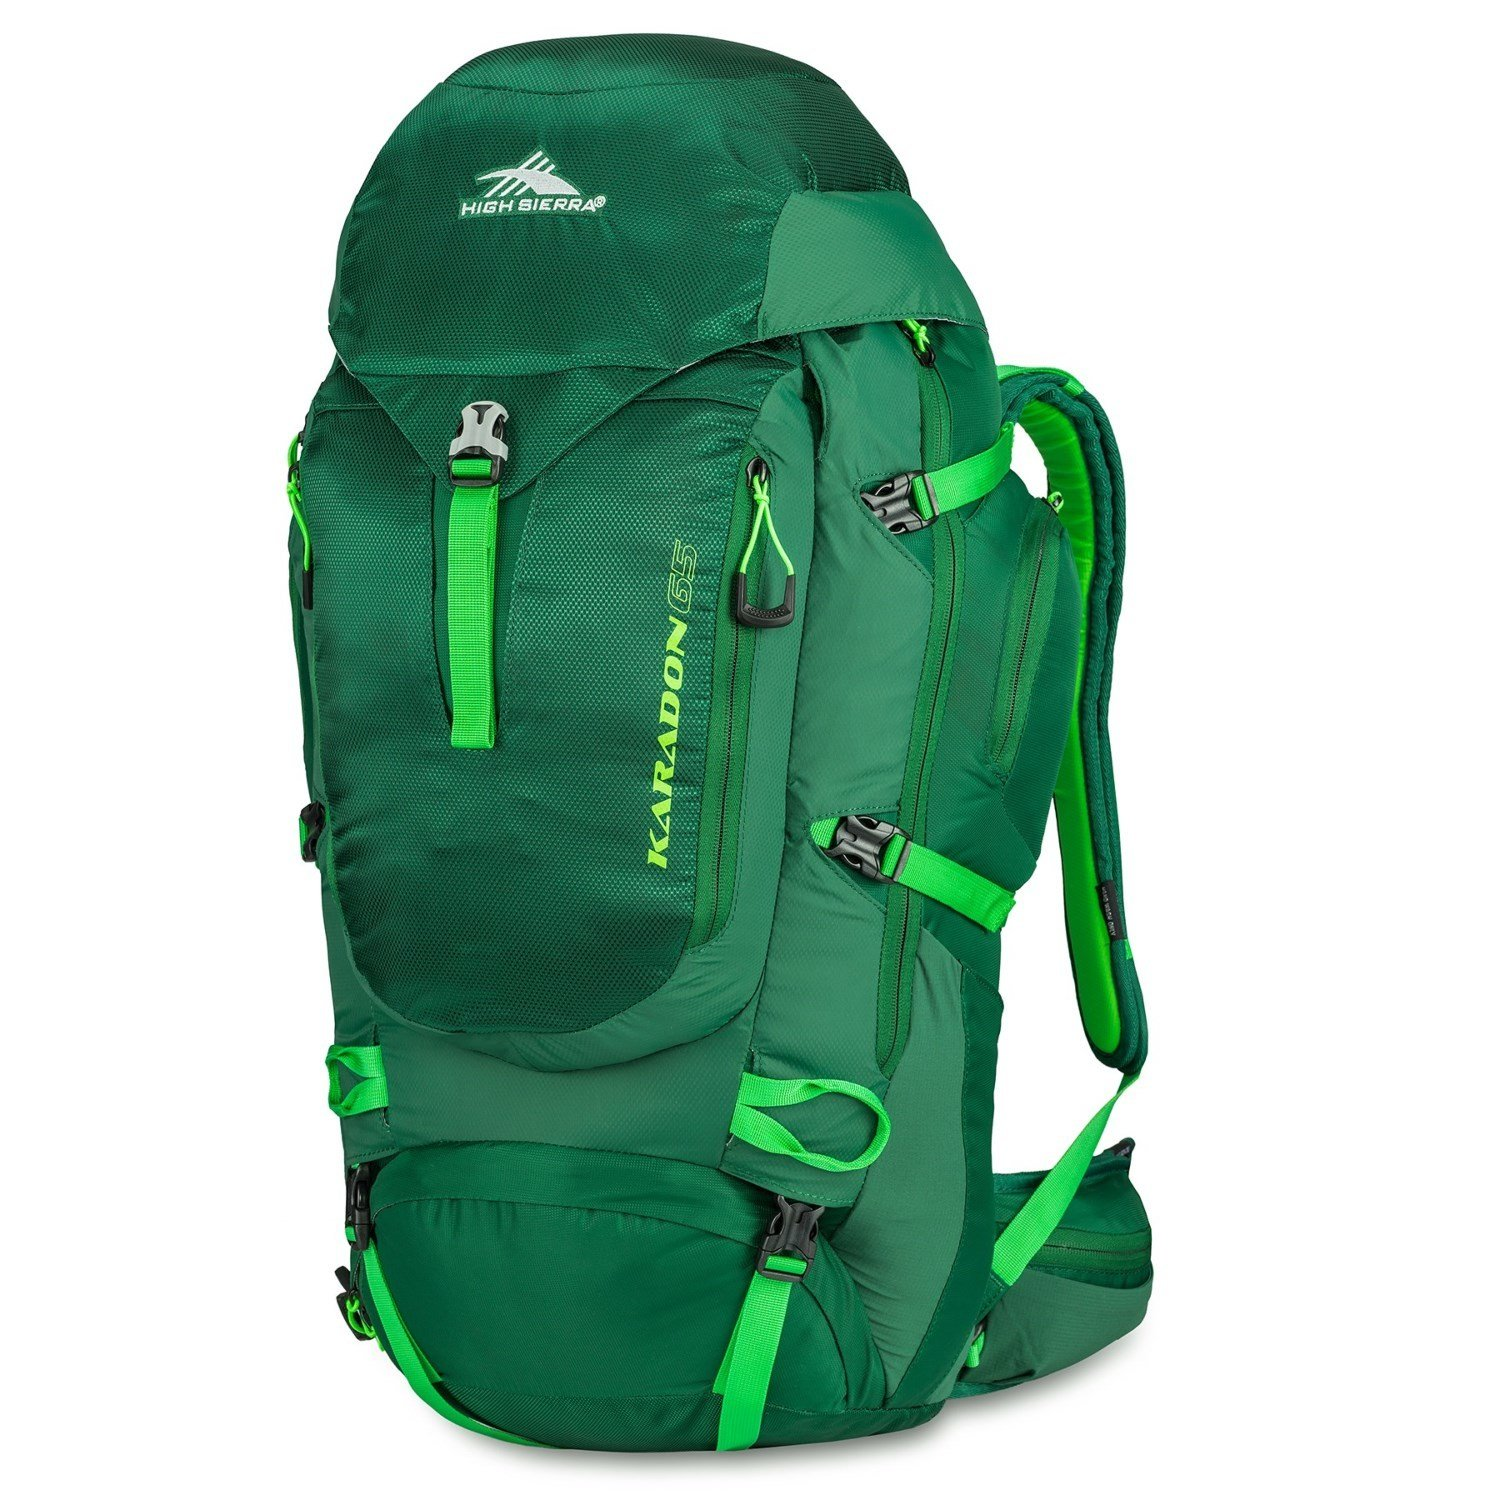 High Sierra Karadon 65L Backpack - Adjustable Fit - Small/Medium Torso